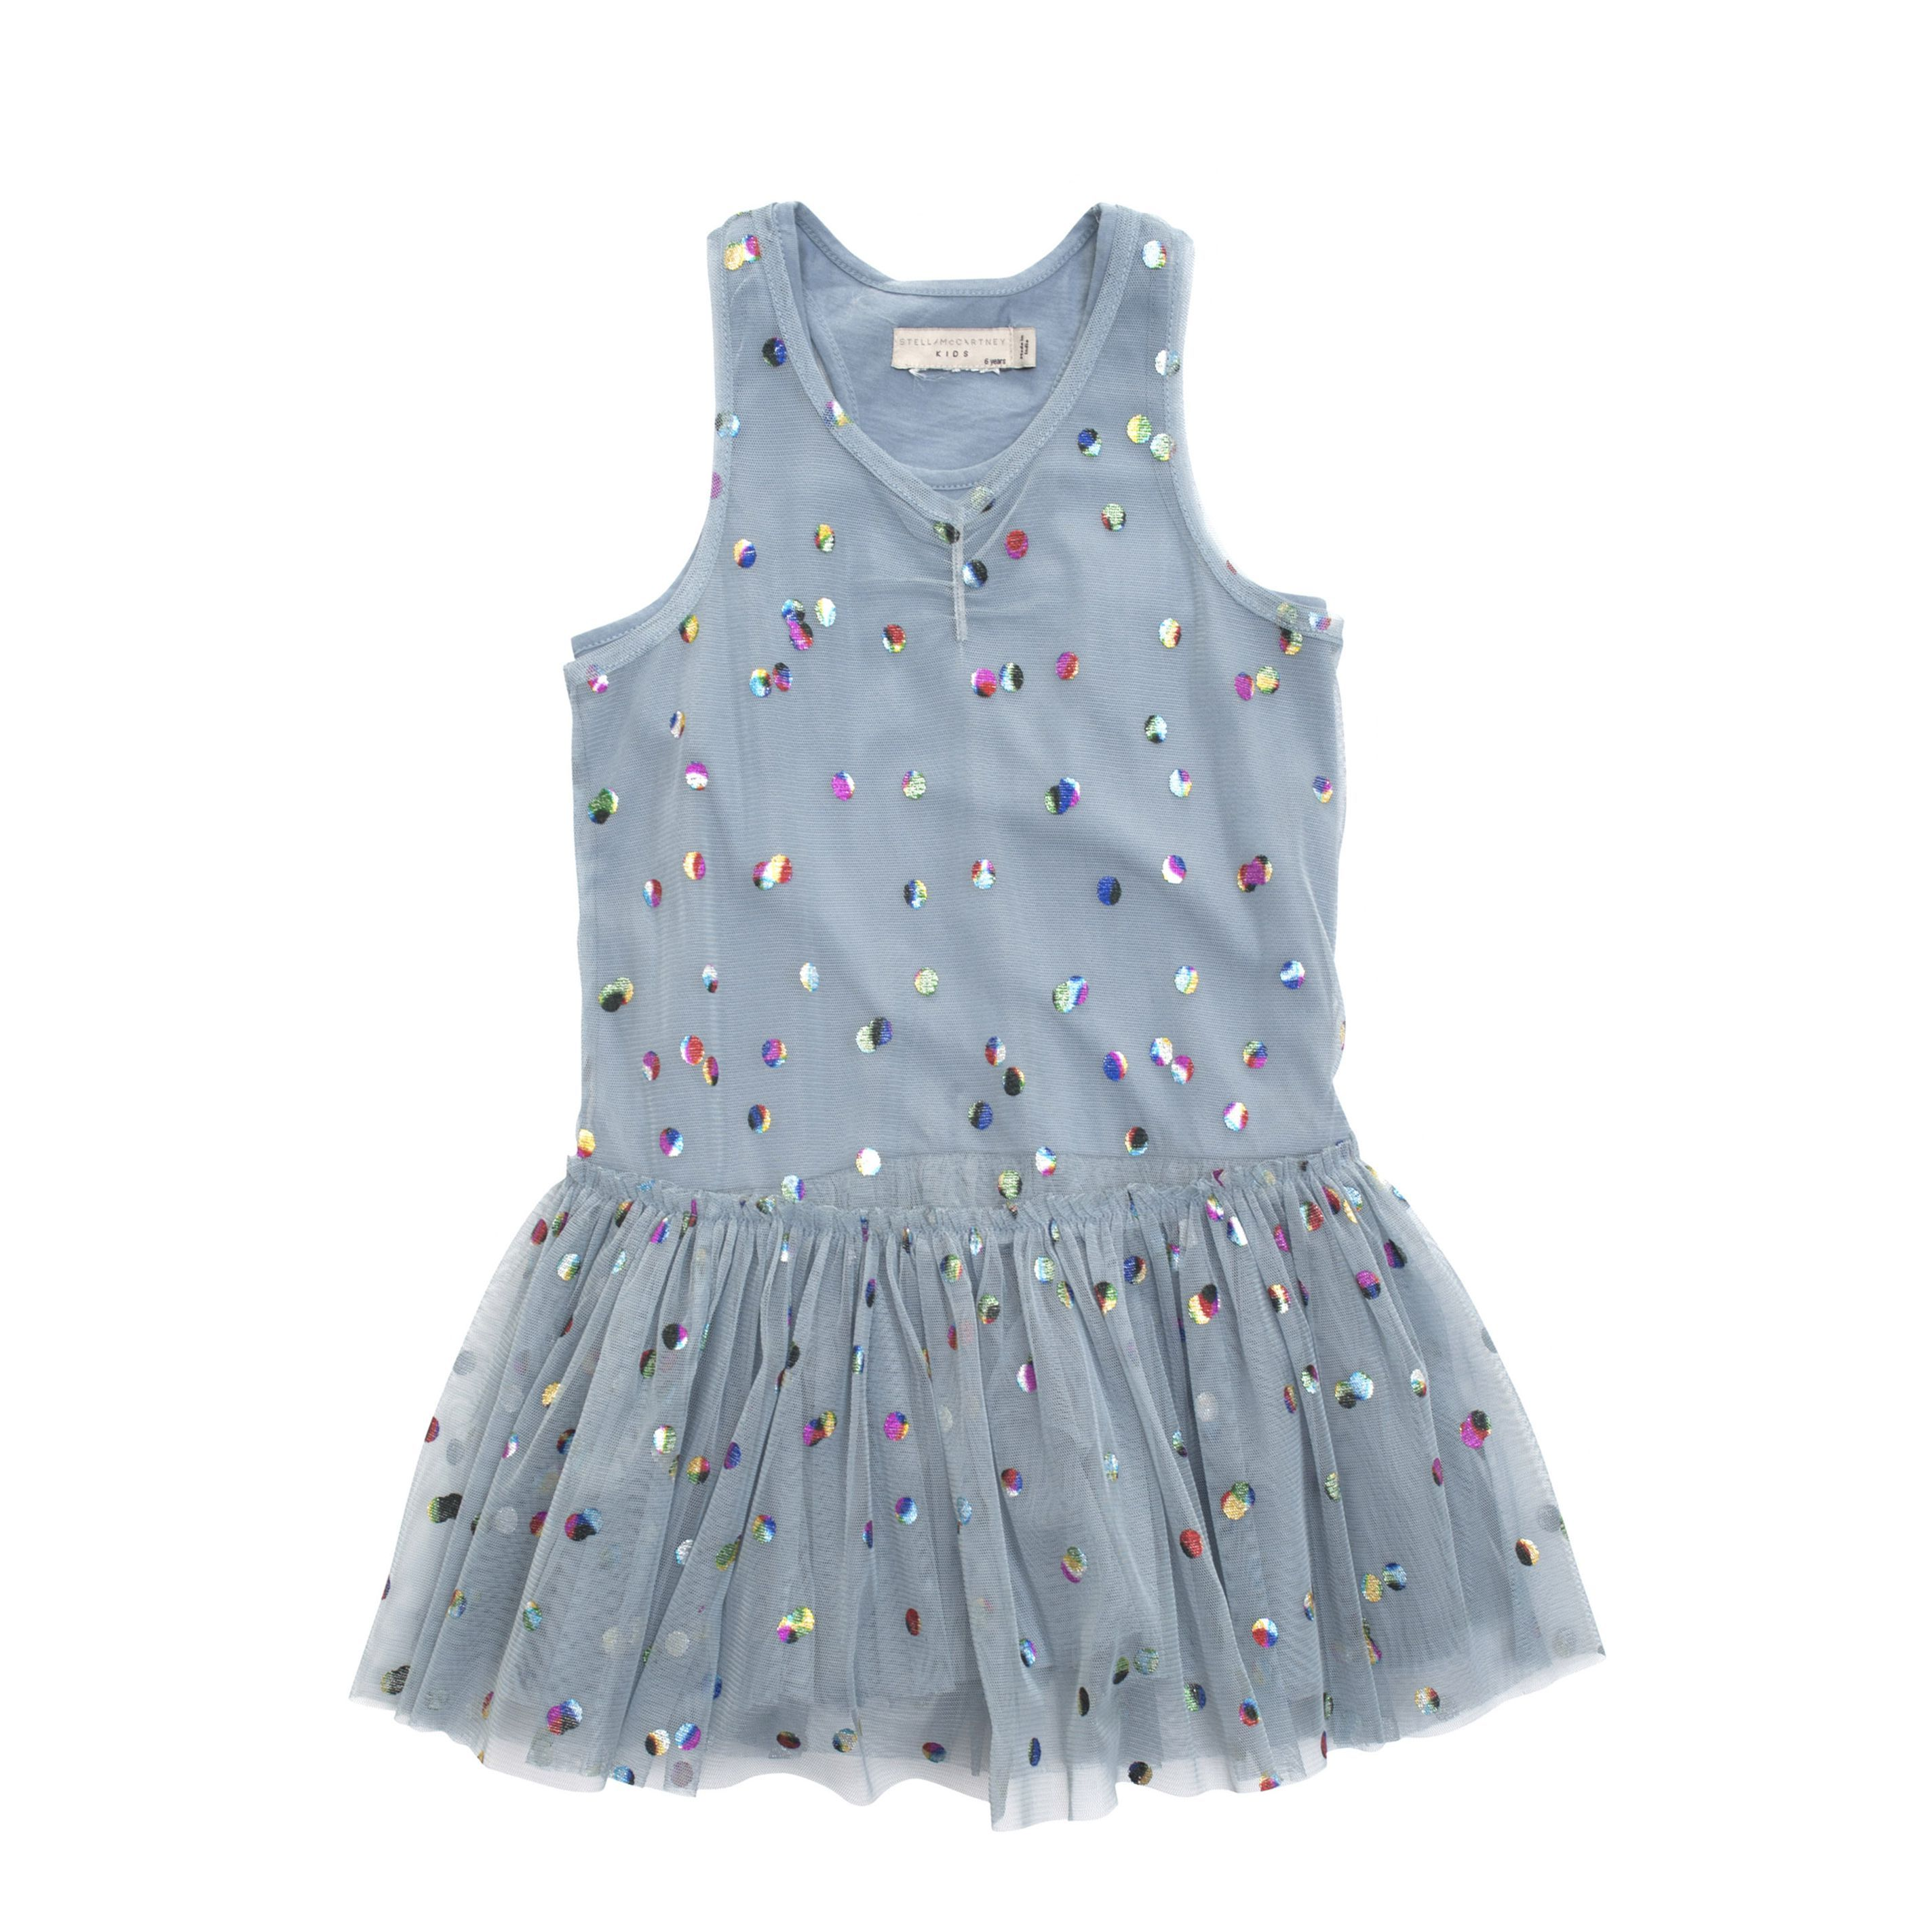 Stella Mccartney Kids - BELL PARTY DRESS - Shop at the official ...